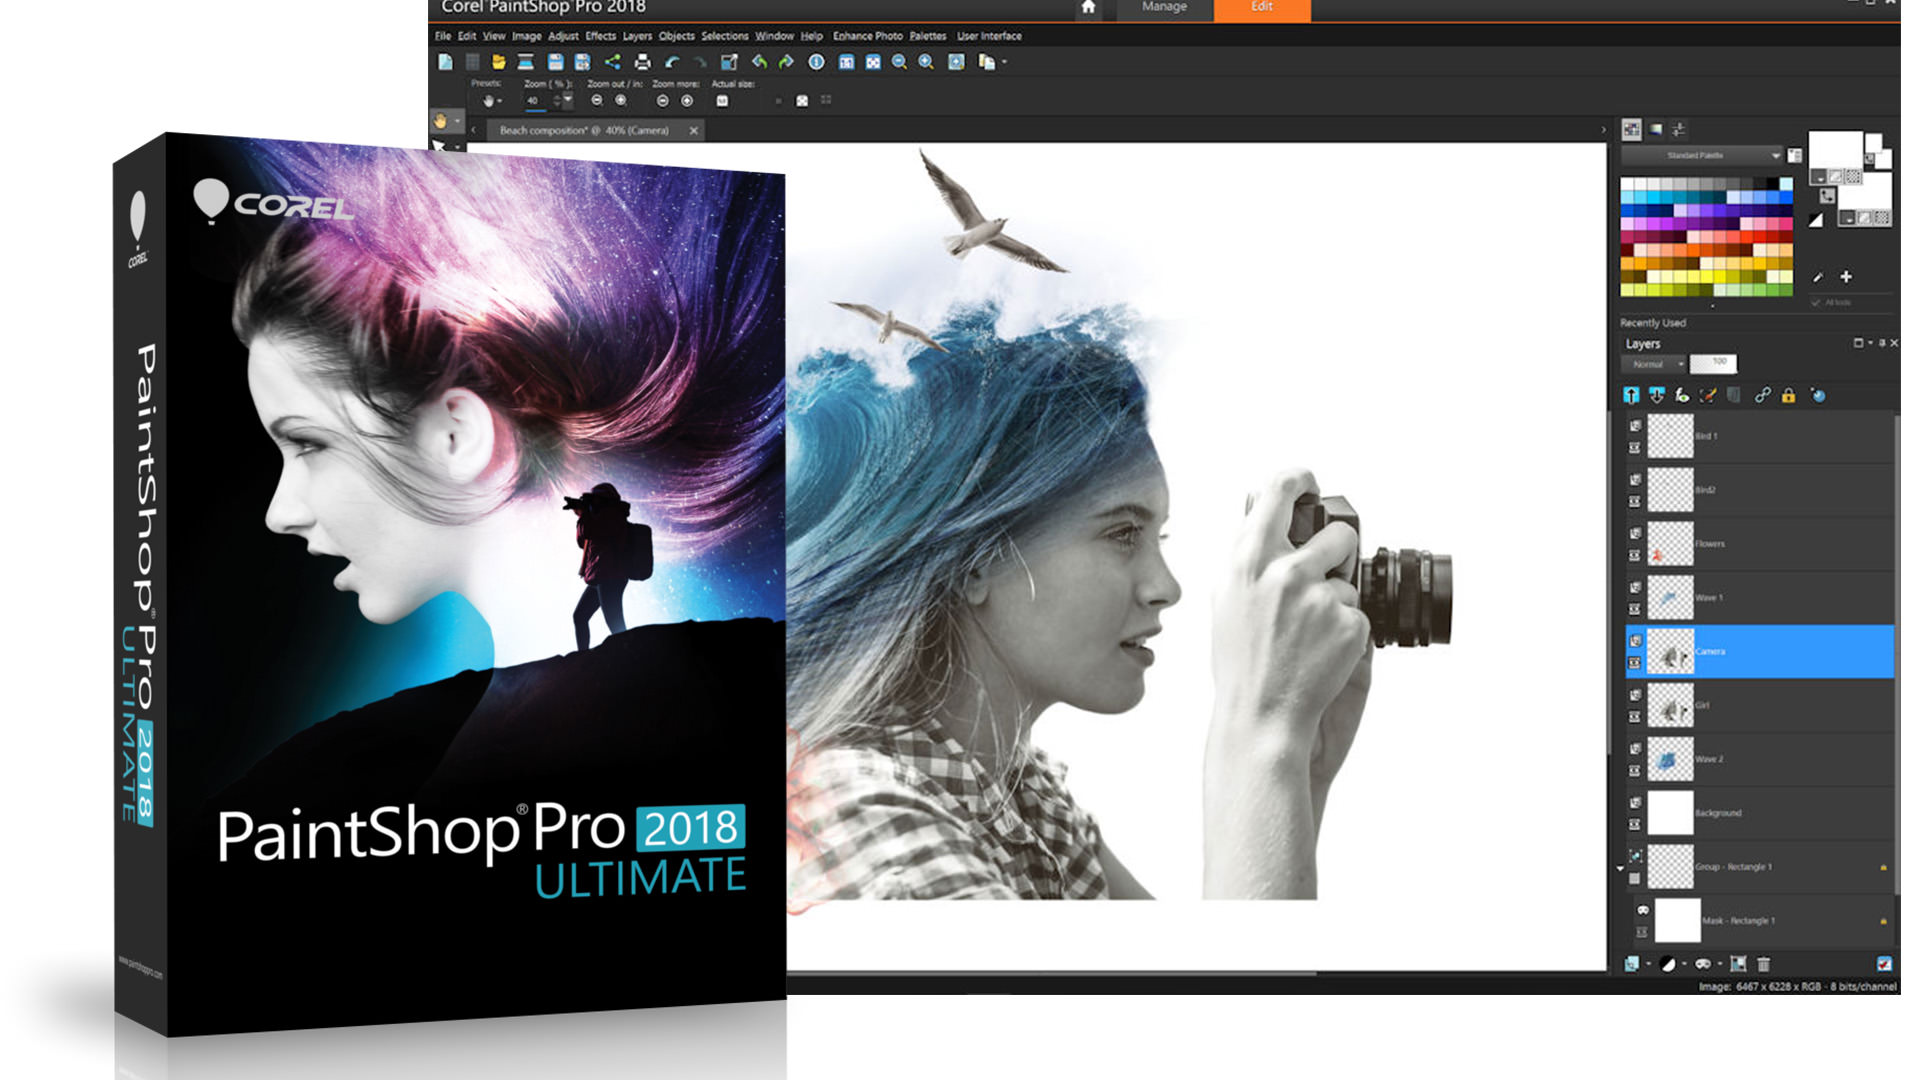 Corel PaintShop Pro 2018 audio video photo